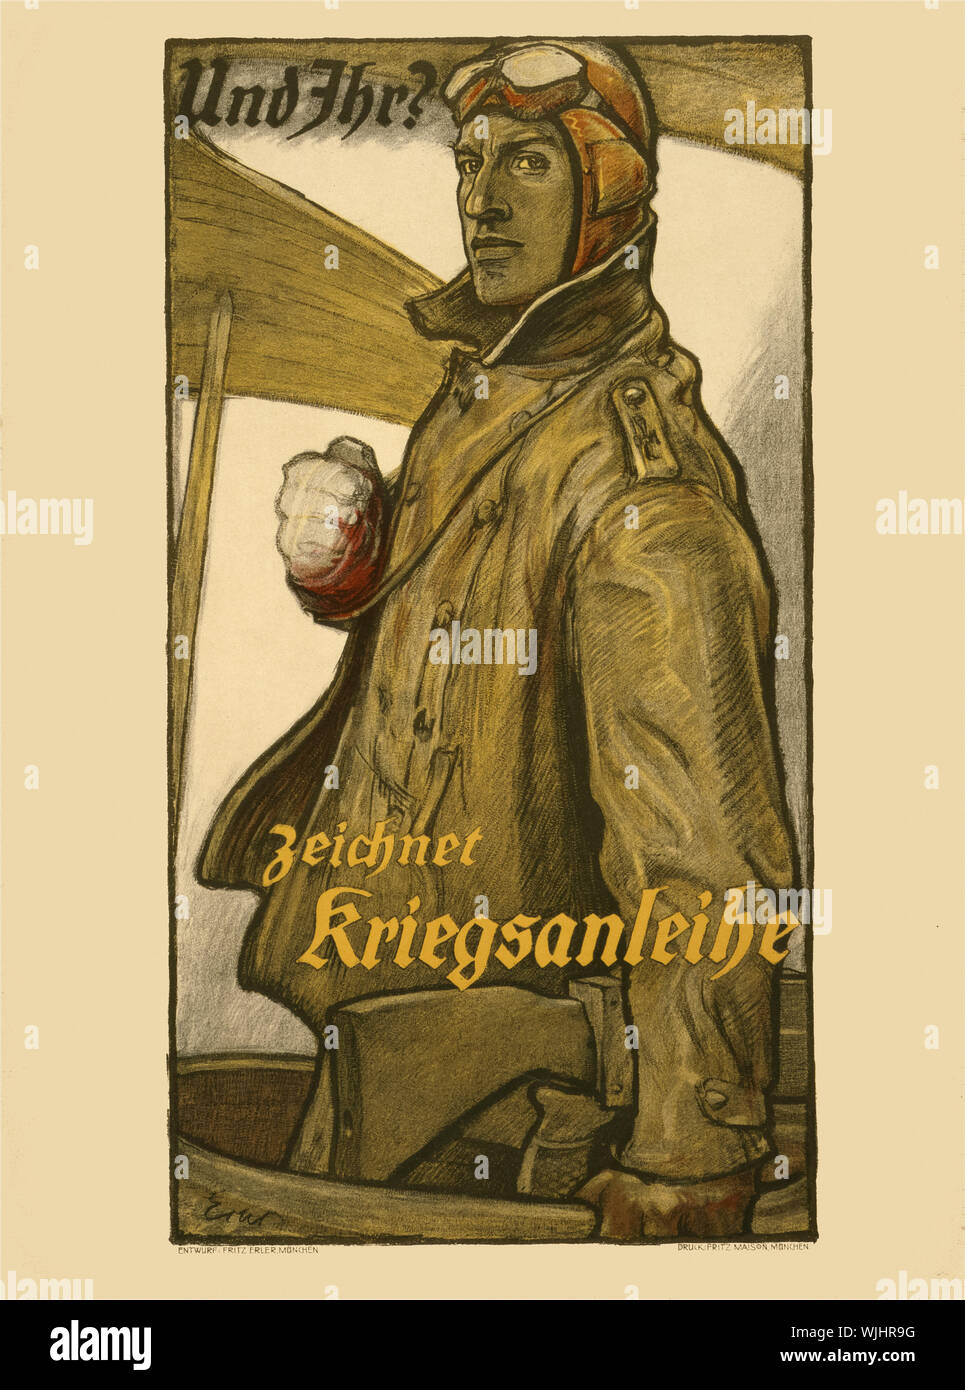 A German First World War Two poster featuring a pilot from the Deutsche Luftstreitkräfte (German Air Force) to buy War Bonds to support the country's war effort. Stock Photo